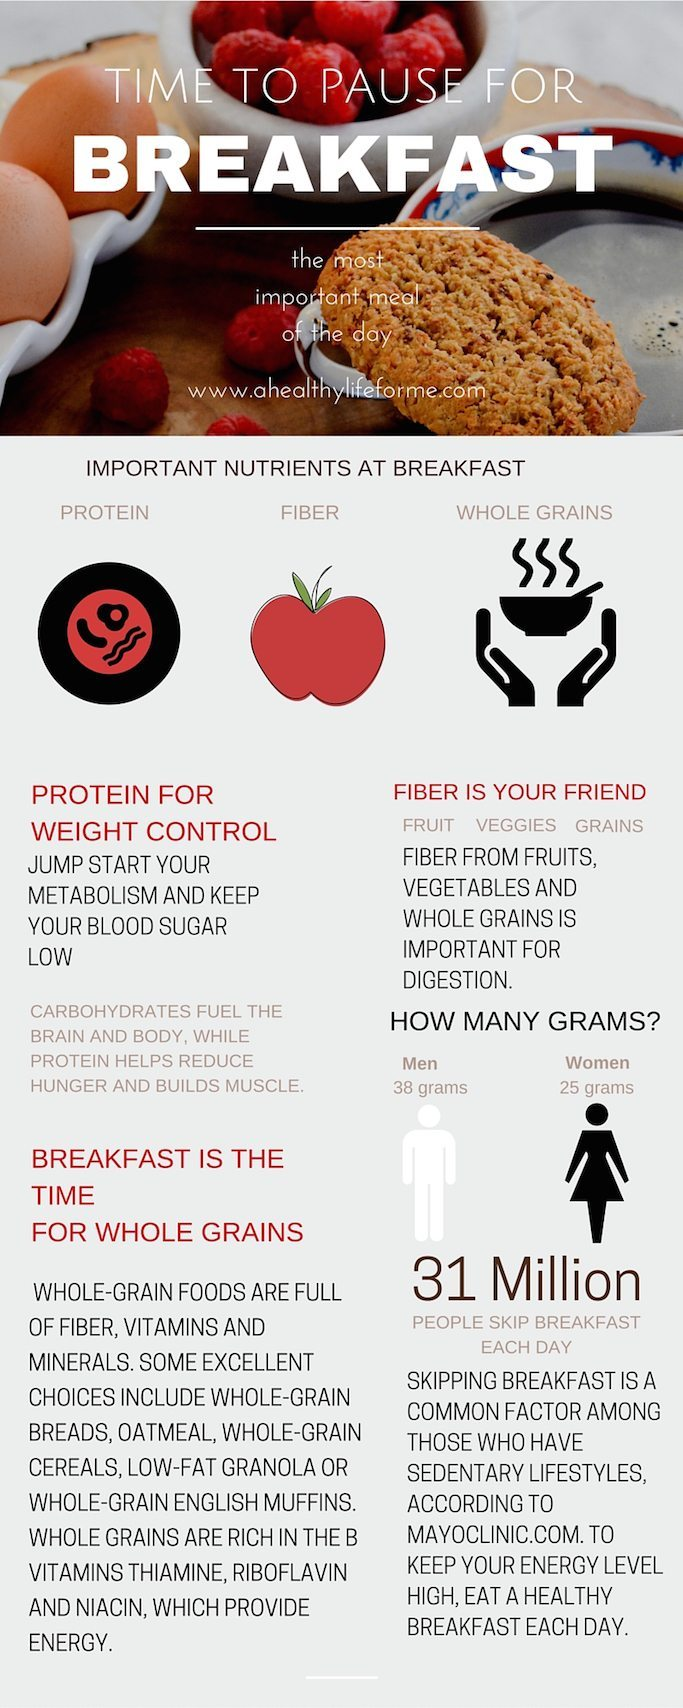 Why should you eat